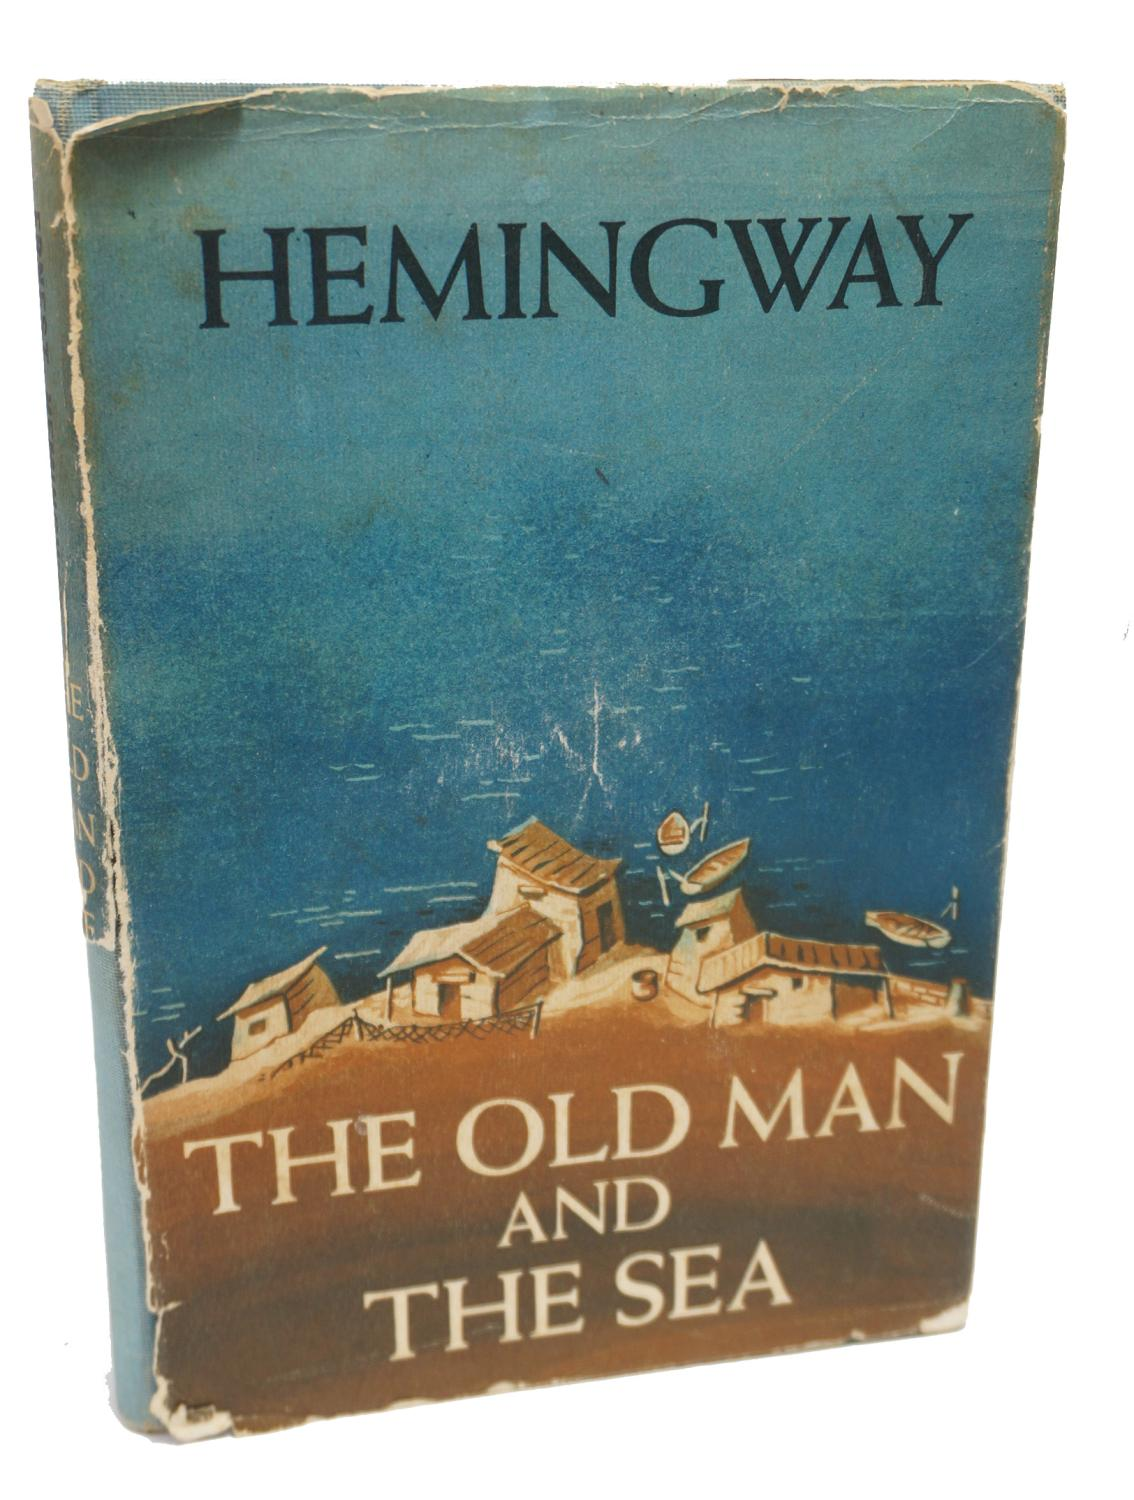 a summary of the old man and the sea a novel by ernest hemingway The old man and the sea was a big success for ernest hemingway when it was published in 1952 at first glance, the story appears to be a simple tale of an old cuban fisherman who catches an enormous fish, only to lose it.